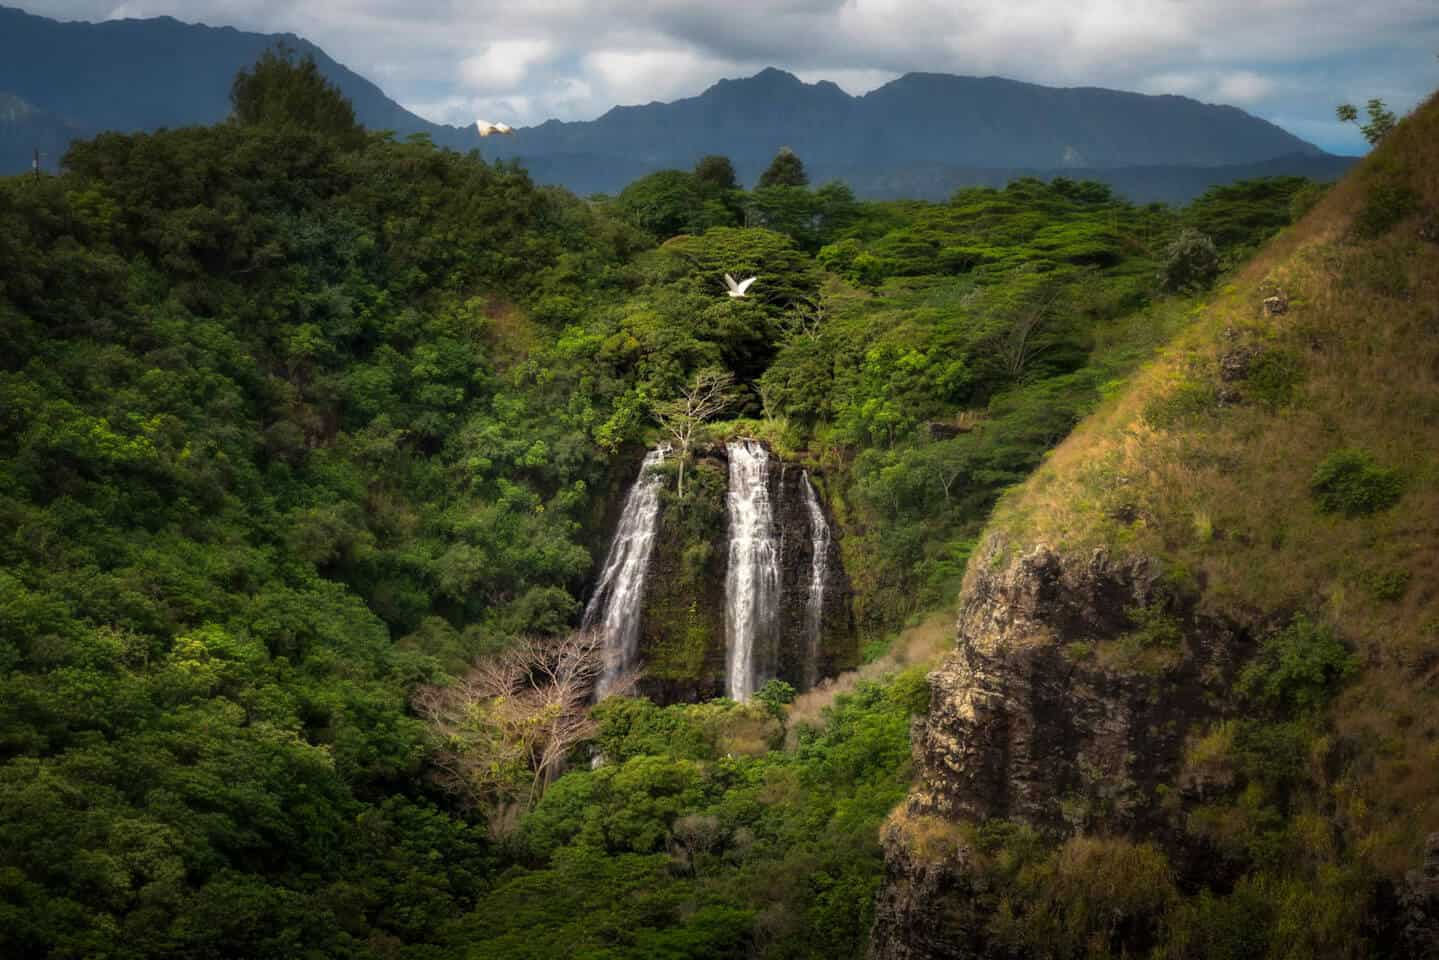 Opaeka'a Falls is one of the most popular waterfalls on your 7 day Kauai itinerary.